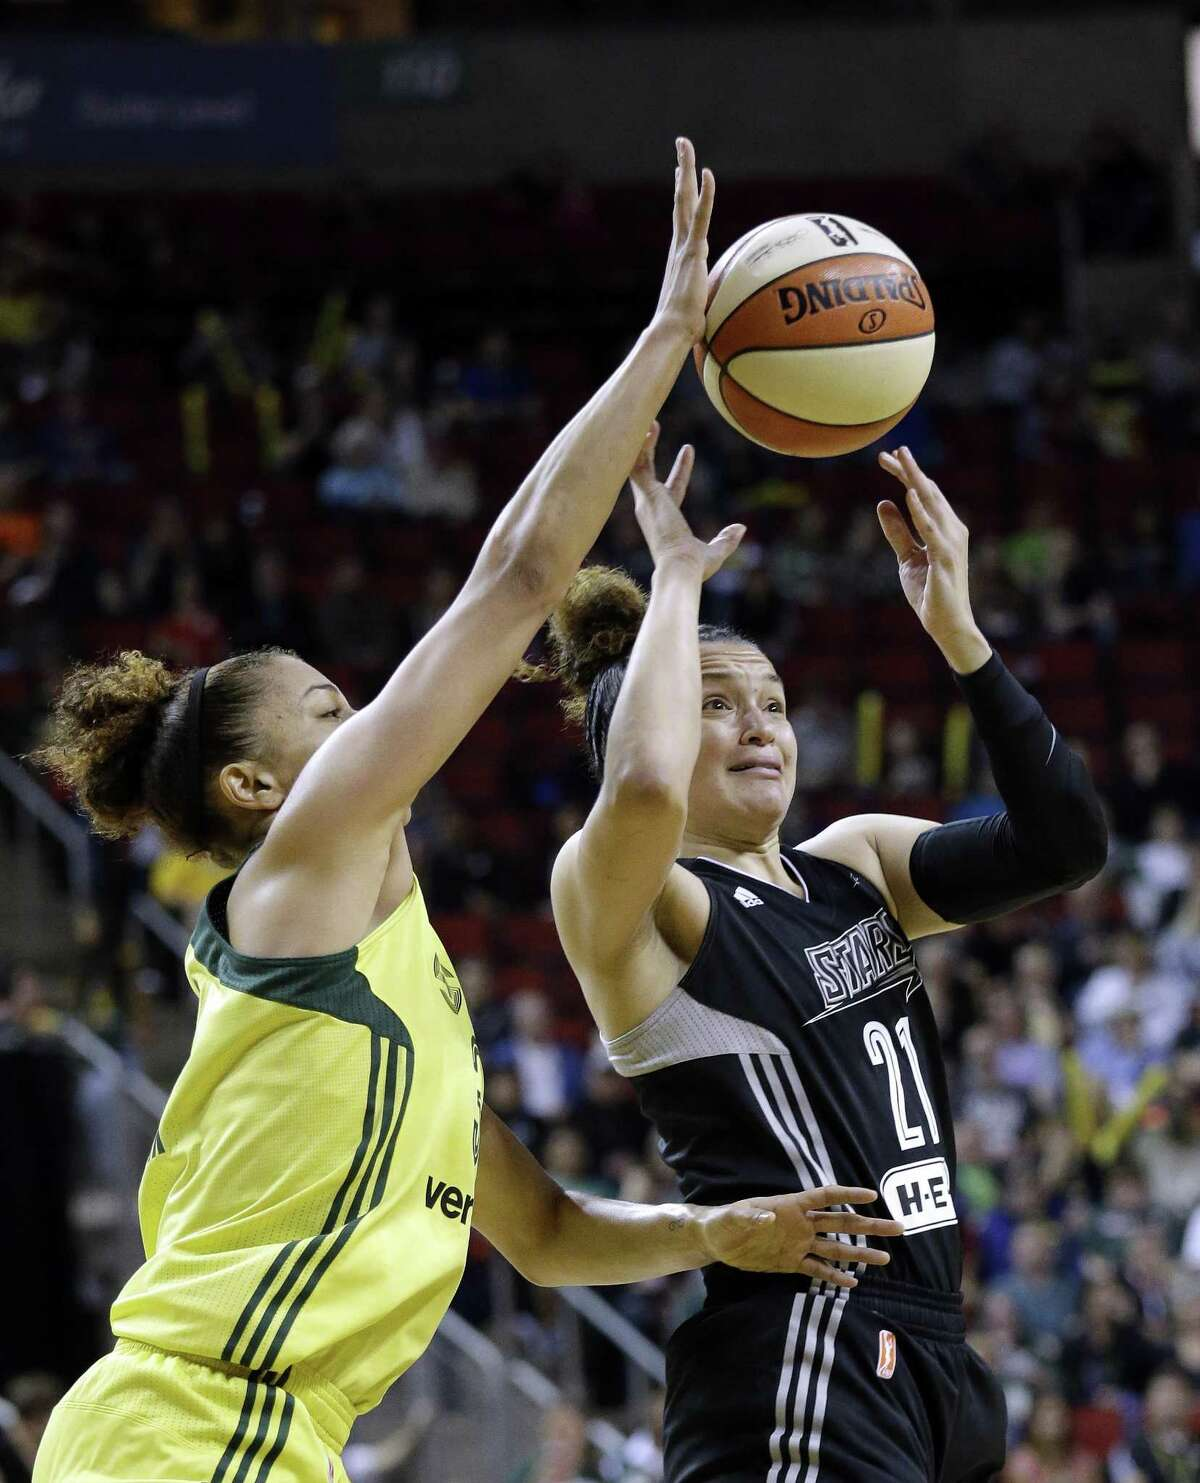 Seattle Storm's Alysha Clark, left, tries to knock the ball away from San Antonio Stars' Kayla McBride in the first half of a WNBA basketball game Sunday, June 18, 2017, in Seattle. (AP Photo/Elaine Thompson)